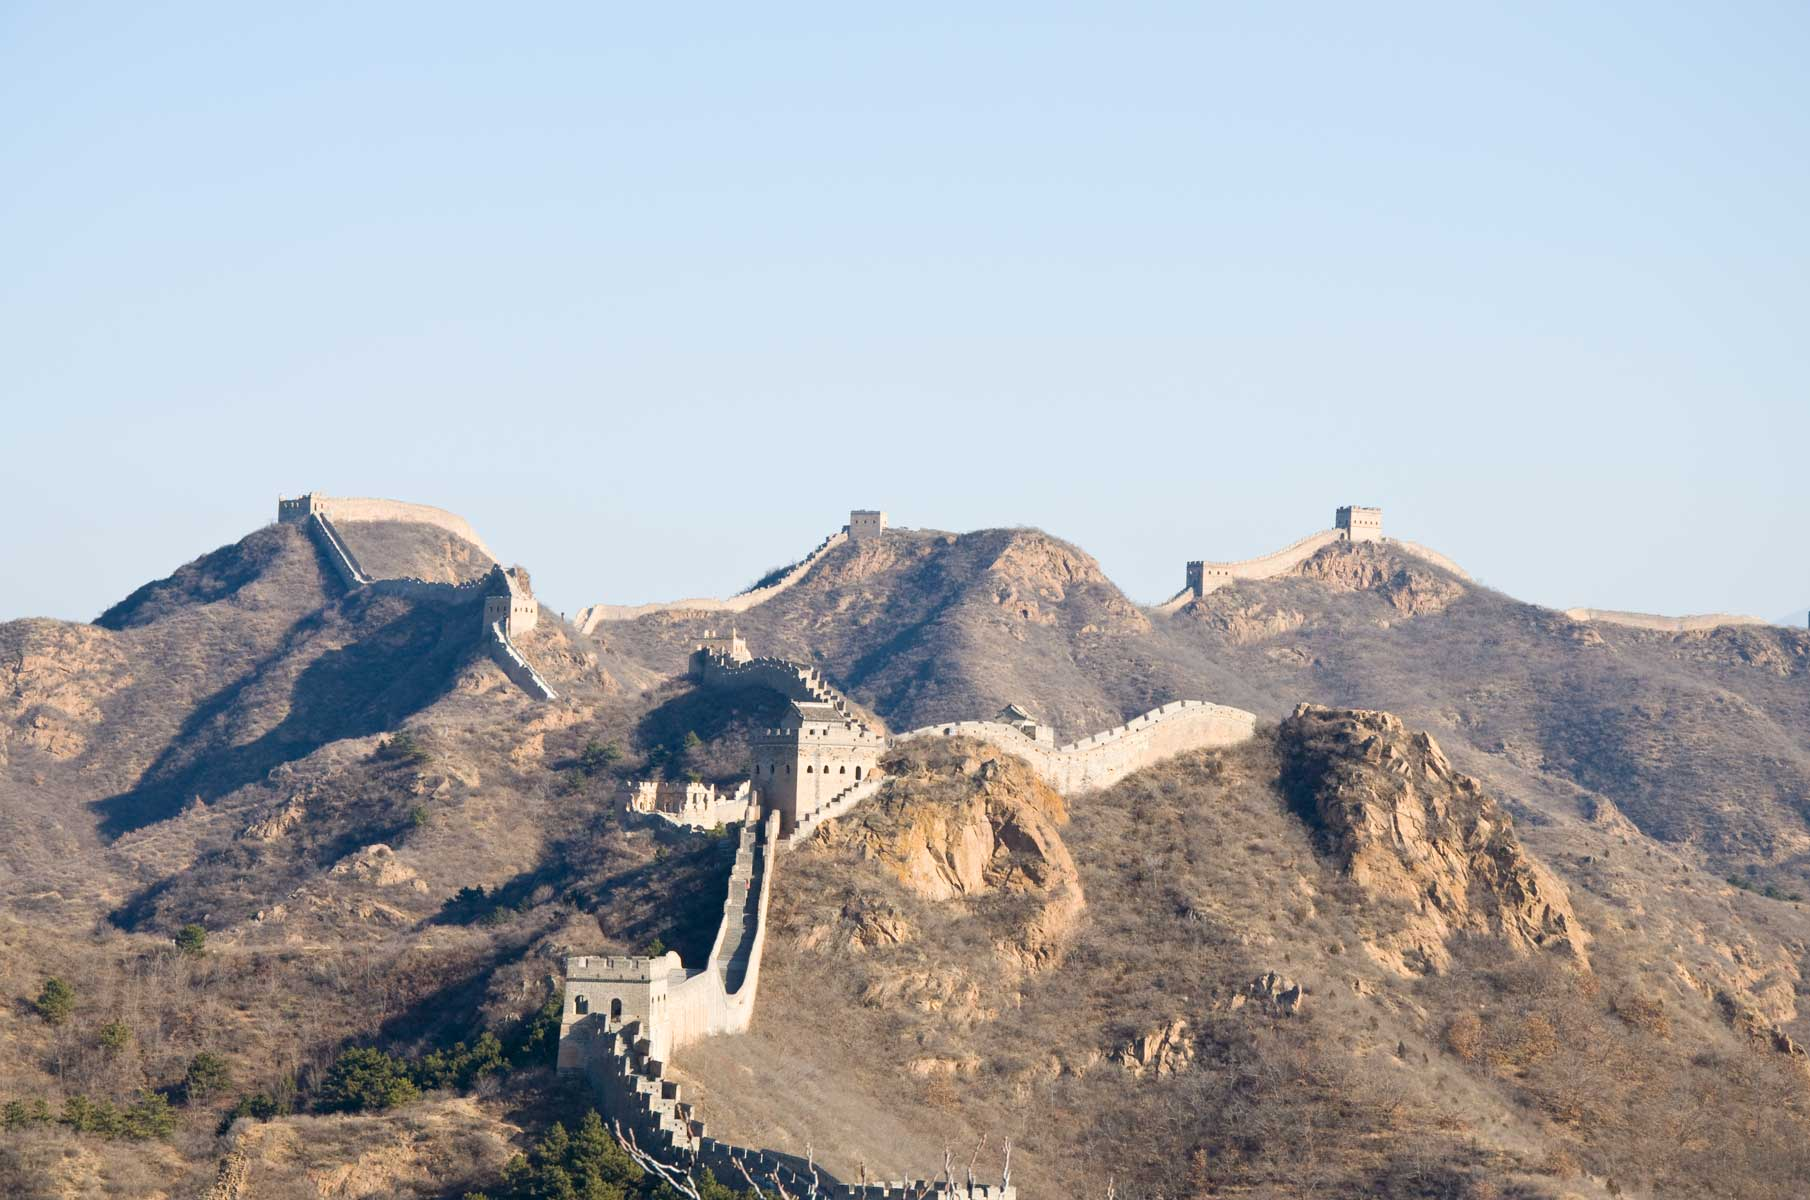 Jinshanling Great Wall Chinesische Mauer in China